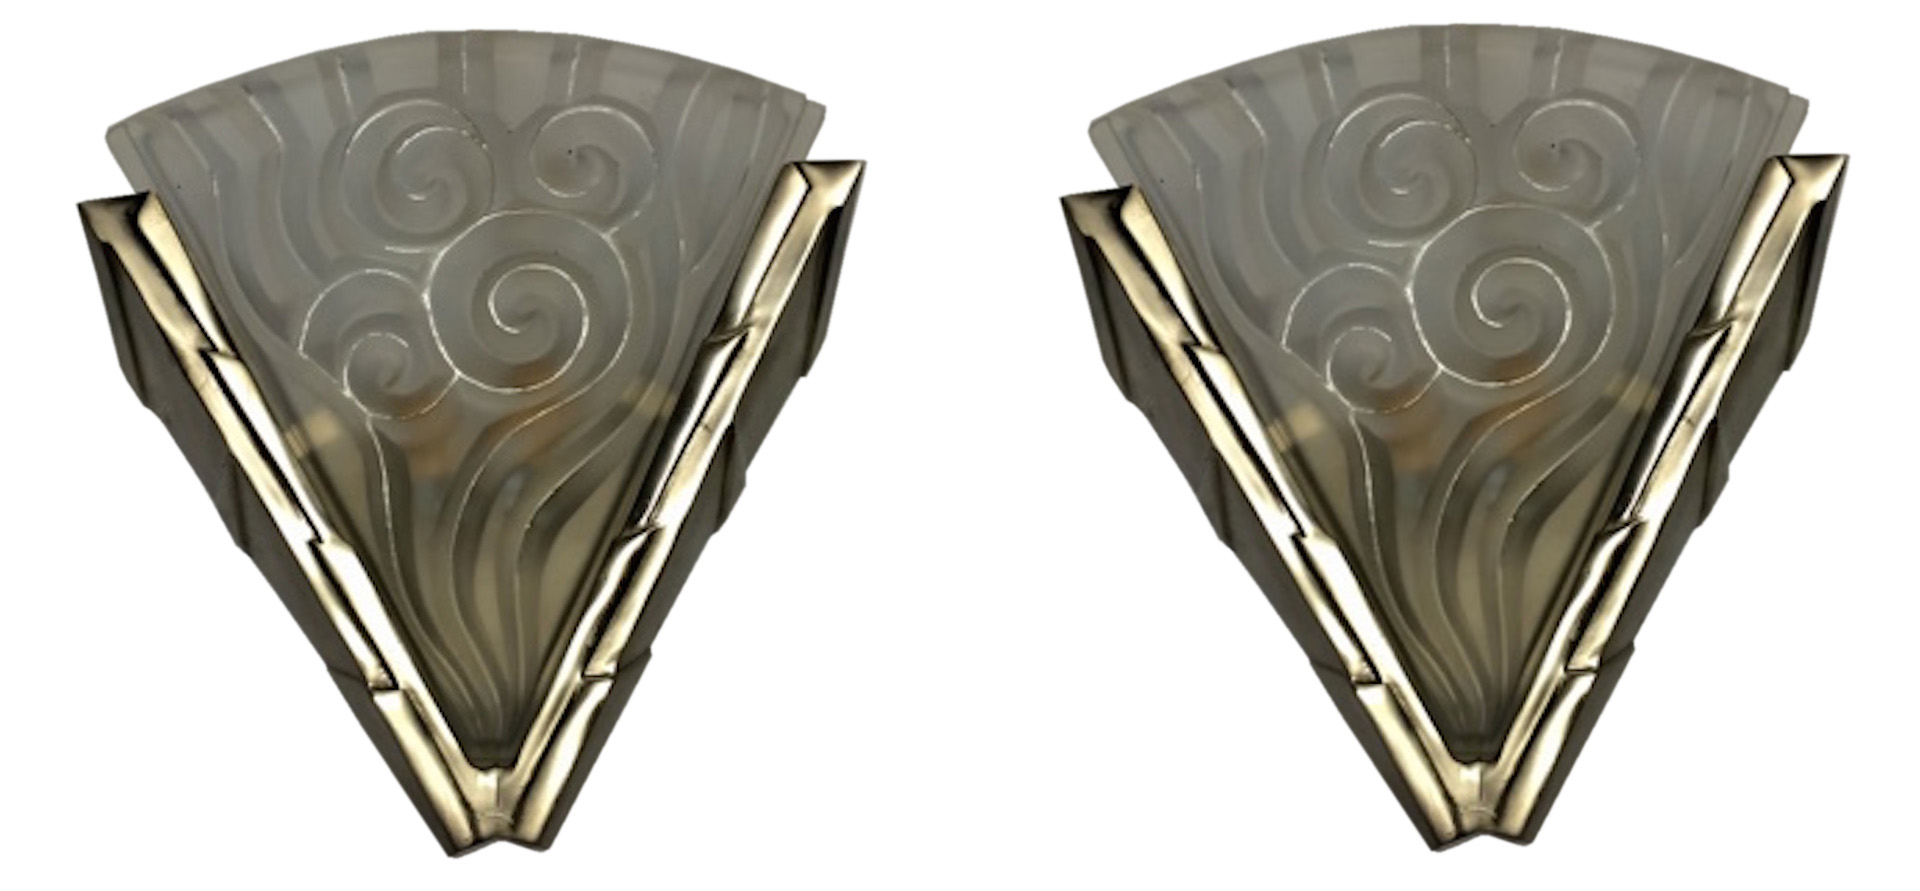 French Art Deco Wall Sconces : Pair French Art Deco Wall Sconces By Degue Modernism